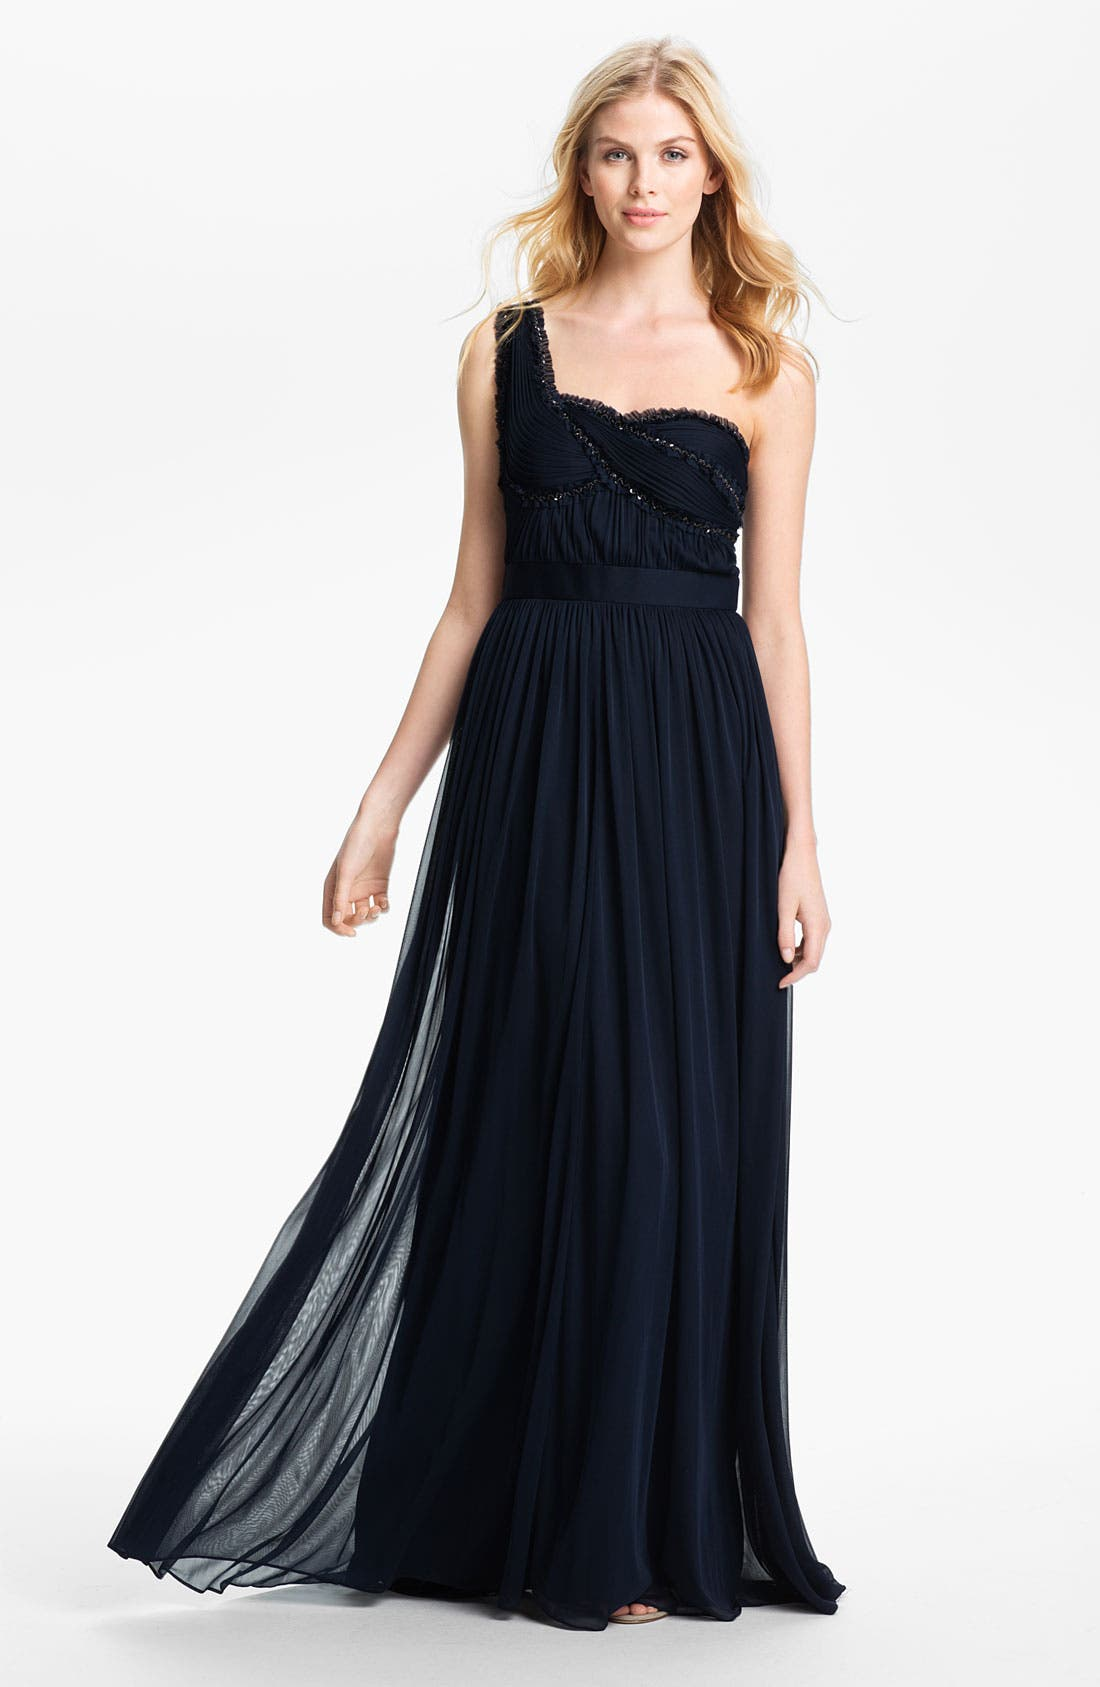 Main Image - Adrianna Papell One Shoulder Embellished Bodice Pleated Gown